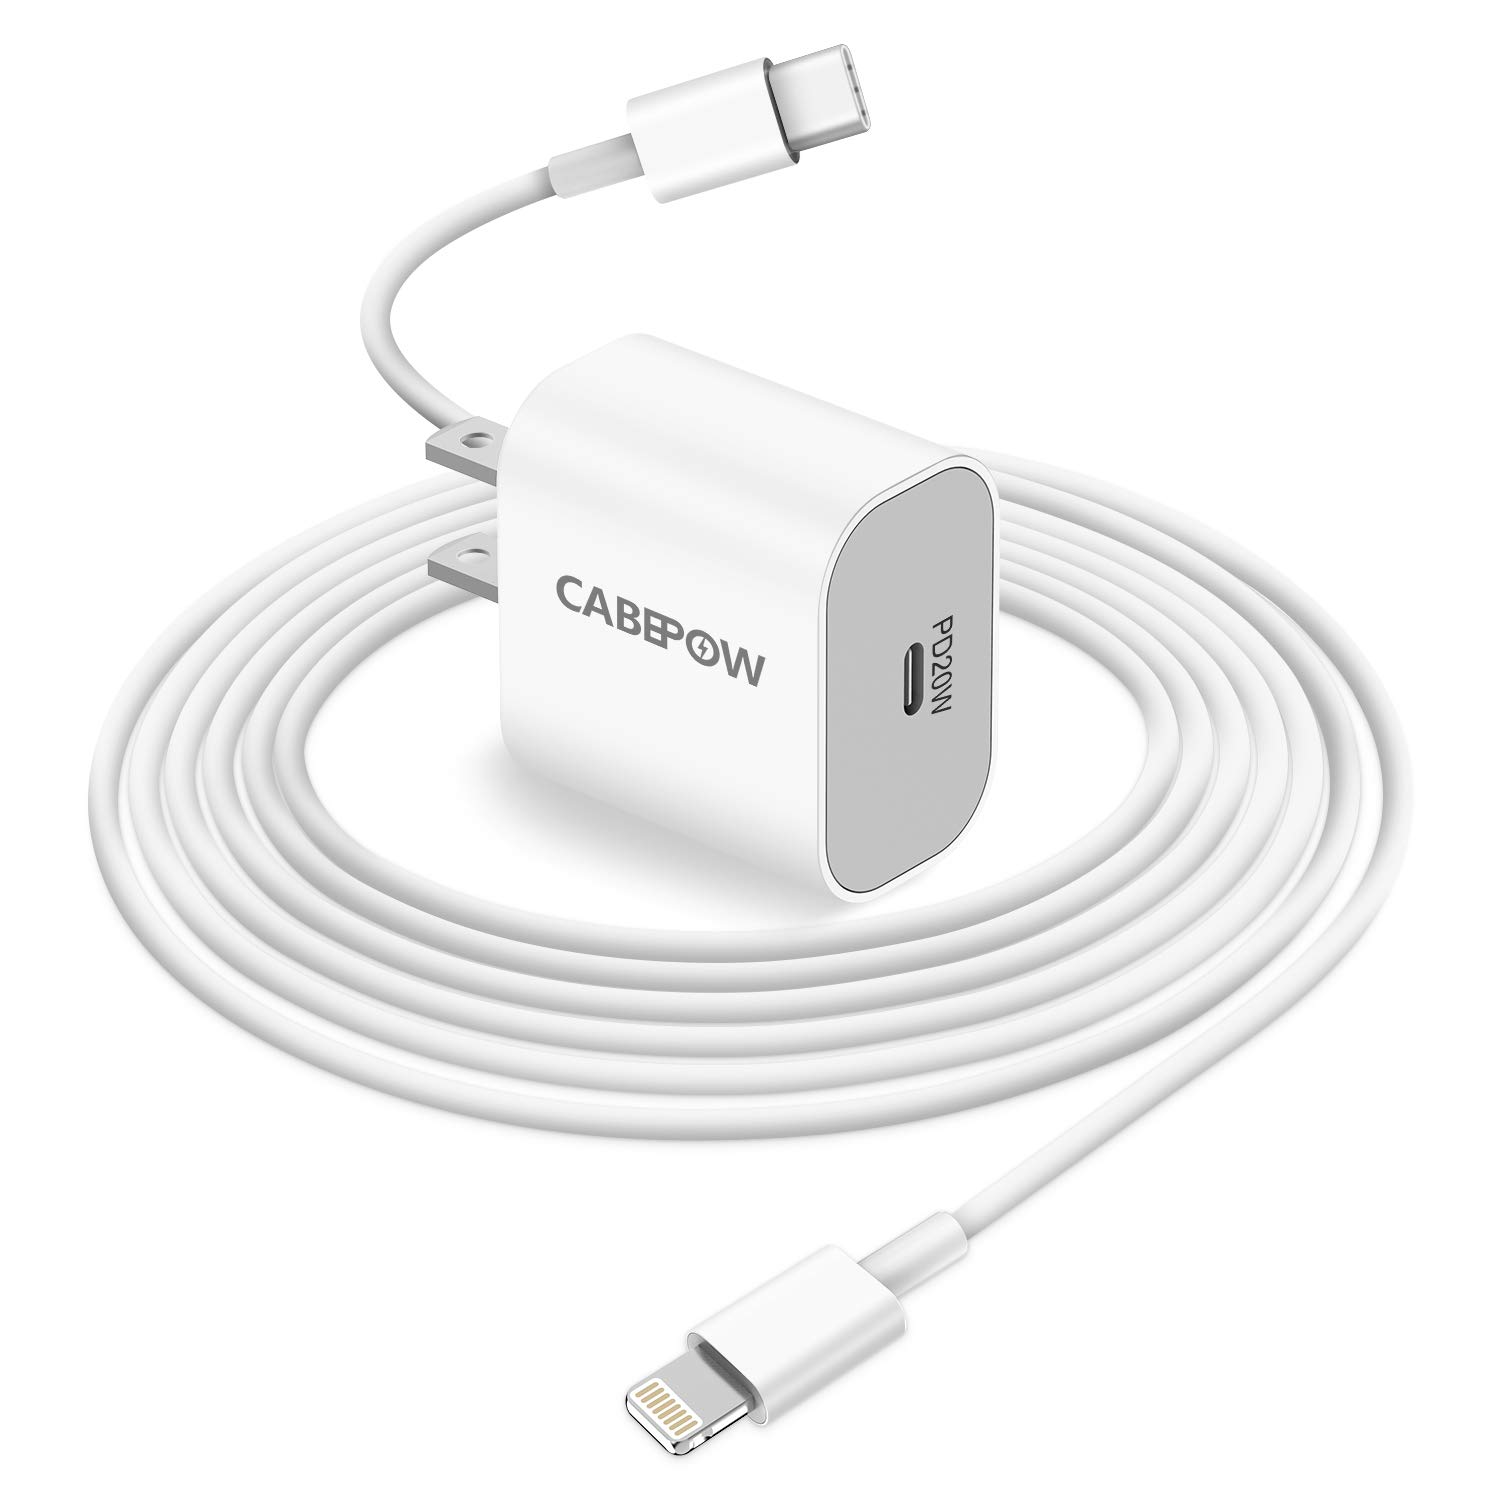 iPhone Fast Charger Apple MFI Certified, Cabepow 20W PD USB-C Power AdapterWall Plug with USB C to Lightning Cable 6ft for Apple iPhone 12 11 Pro XR XS Max X 8 Plus iPad Pro iPad Air